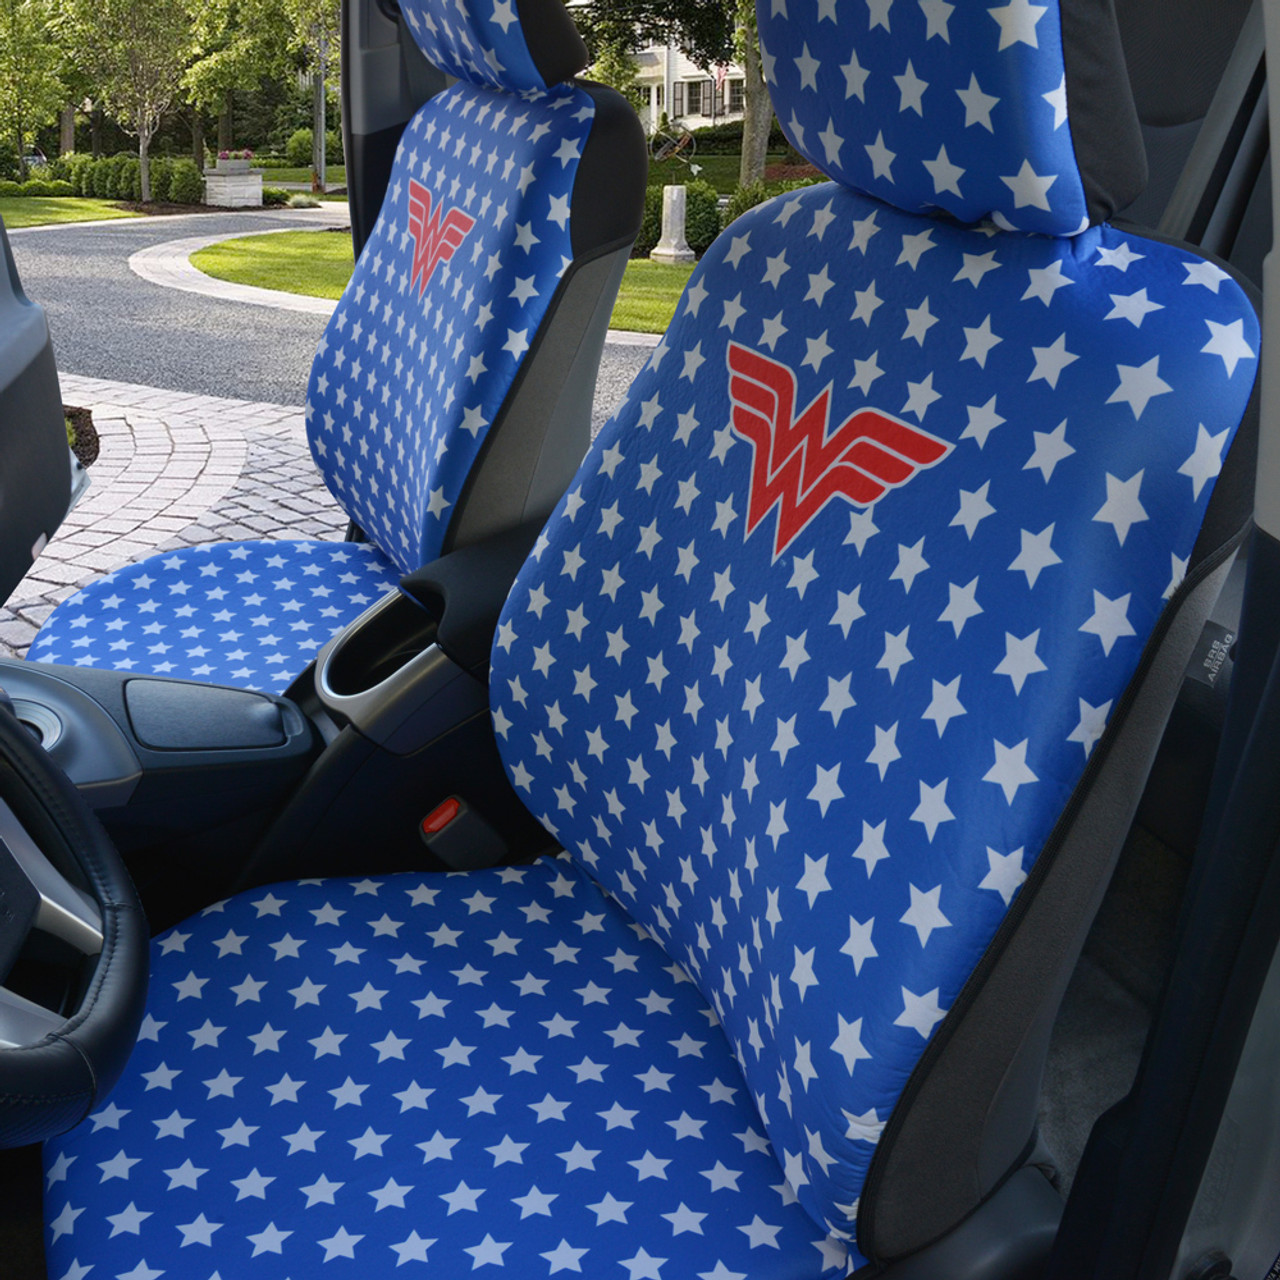 Seat Covers Heavy Duty Soft & Thick Car Seat Covers w/ Steering Wheel Cover & Seat-Belt Pads